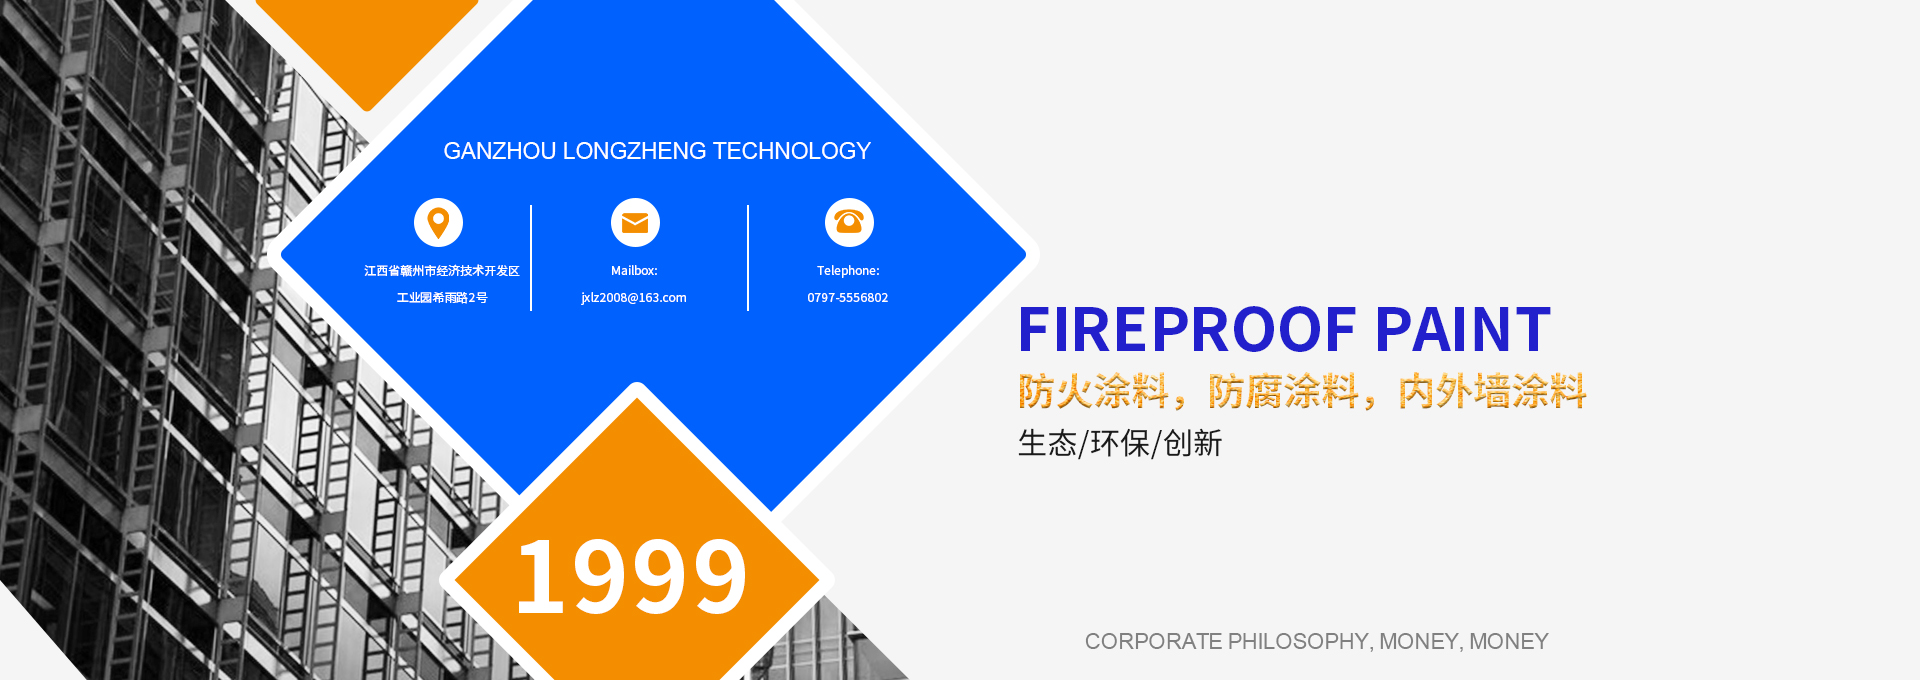 Fireproof coating manufacturer